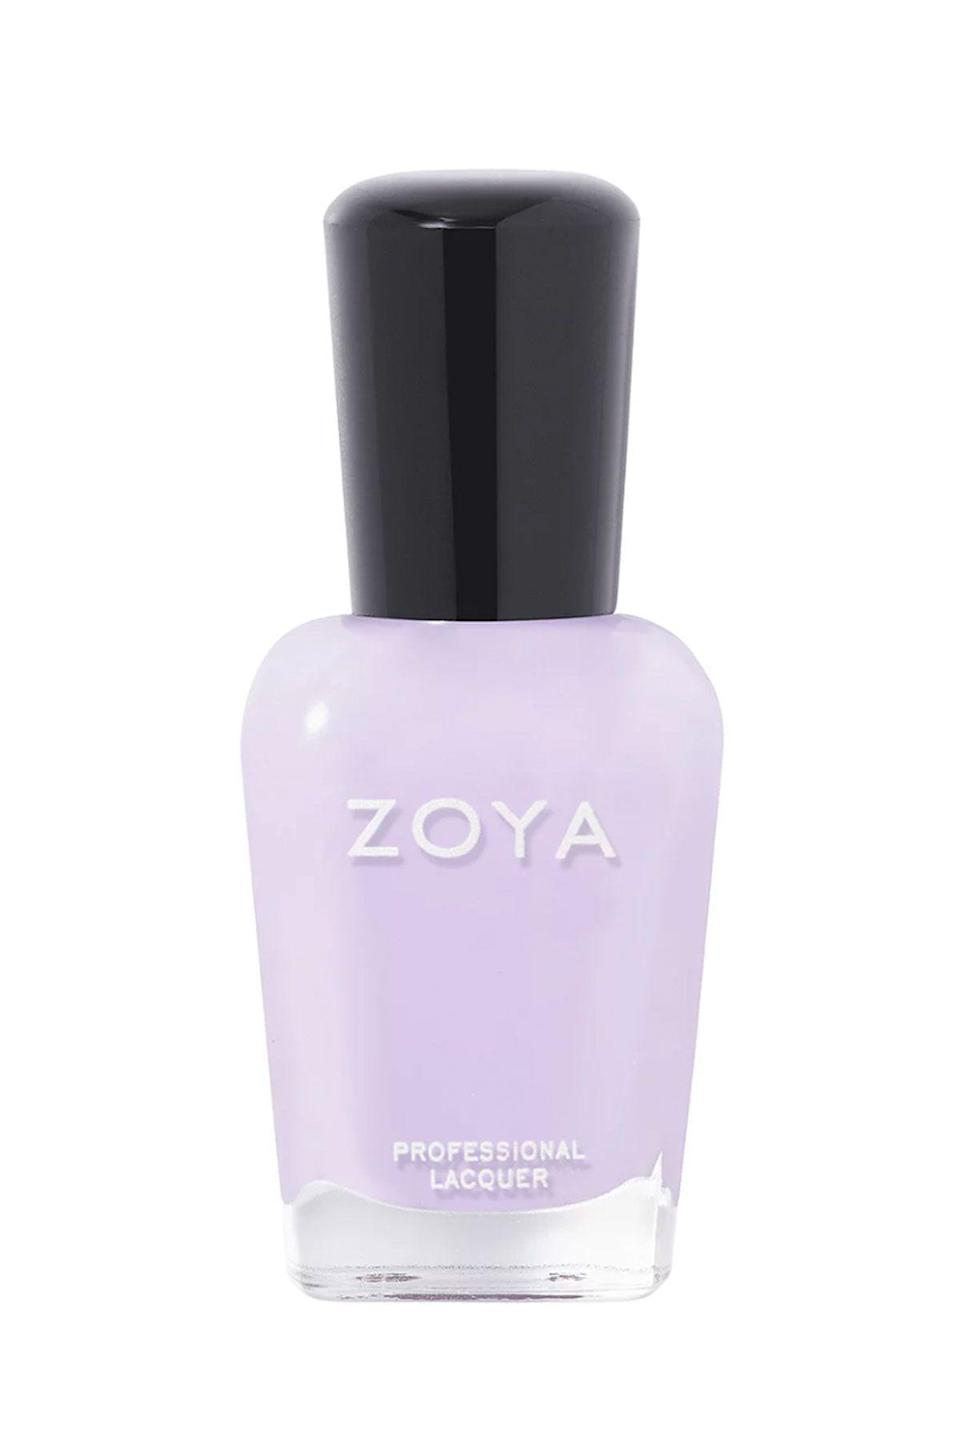 """<p><strong>Zoya</strong></p><p>ulta.com</p><p><strong>$9.00</strong></p><p><a href=""""https://go.redirectingat.com?id=74968X1596630&url=https%3A%2F%2Fwww.ulta.com%2Fnail-lacquer%3FproductId%3DxlsImpprod13741055&sref=https%3A%2F%2Fwww.seventeen.com%2Fbeauty%2Fnails%2Fg2741%2Fbest-spring-nail-colors%2F"""" rel=""""nofollow noopener"""" target=""""_blank"""" data-ylk=""""slk:SHOP NOW"""" class=""""link rapid-noclick-resp"""">SHOP NOW</a></p><p>There's a reason light purple colors are so popular for springtime, no matter what year it is. </p>"""